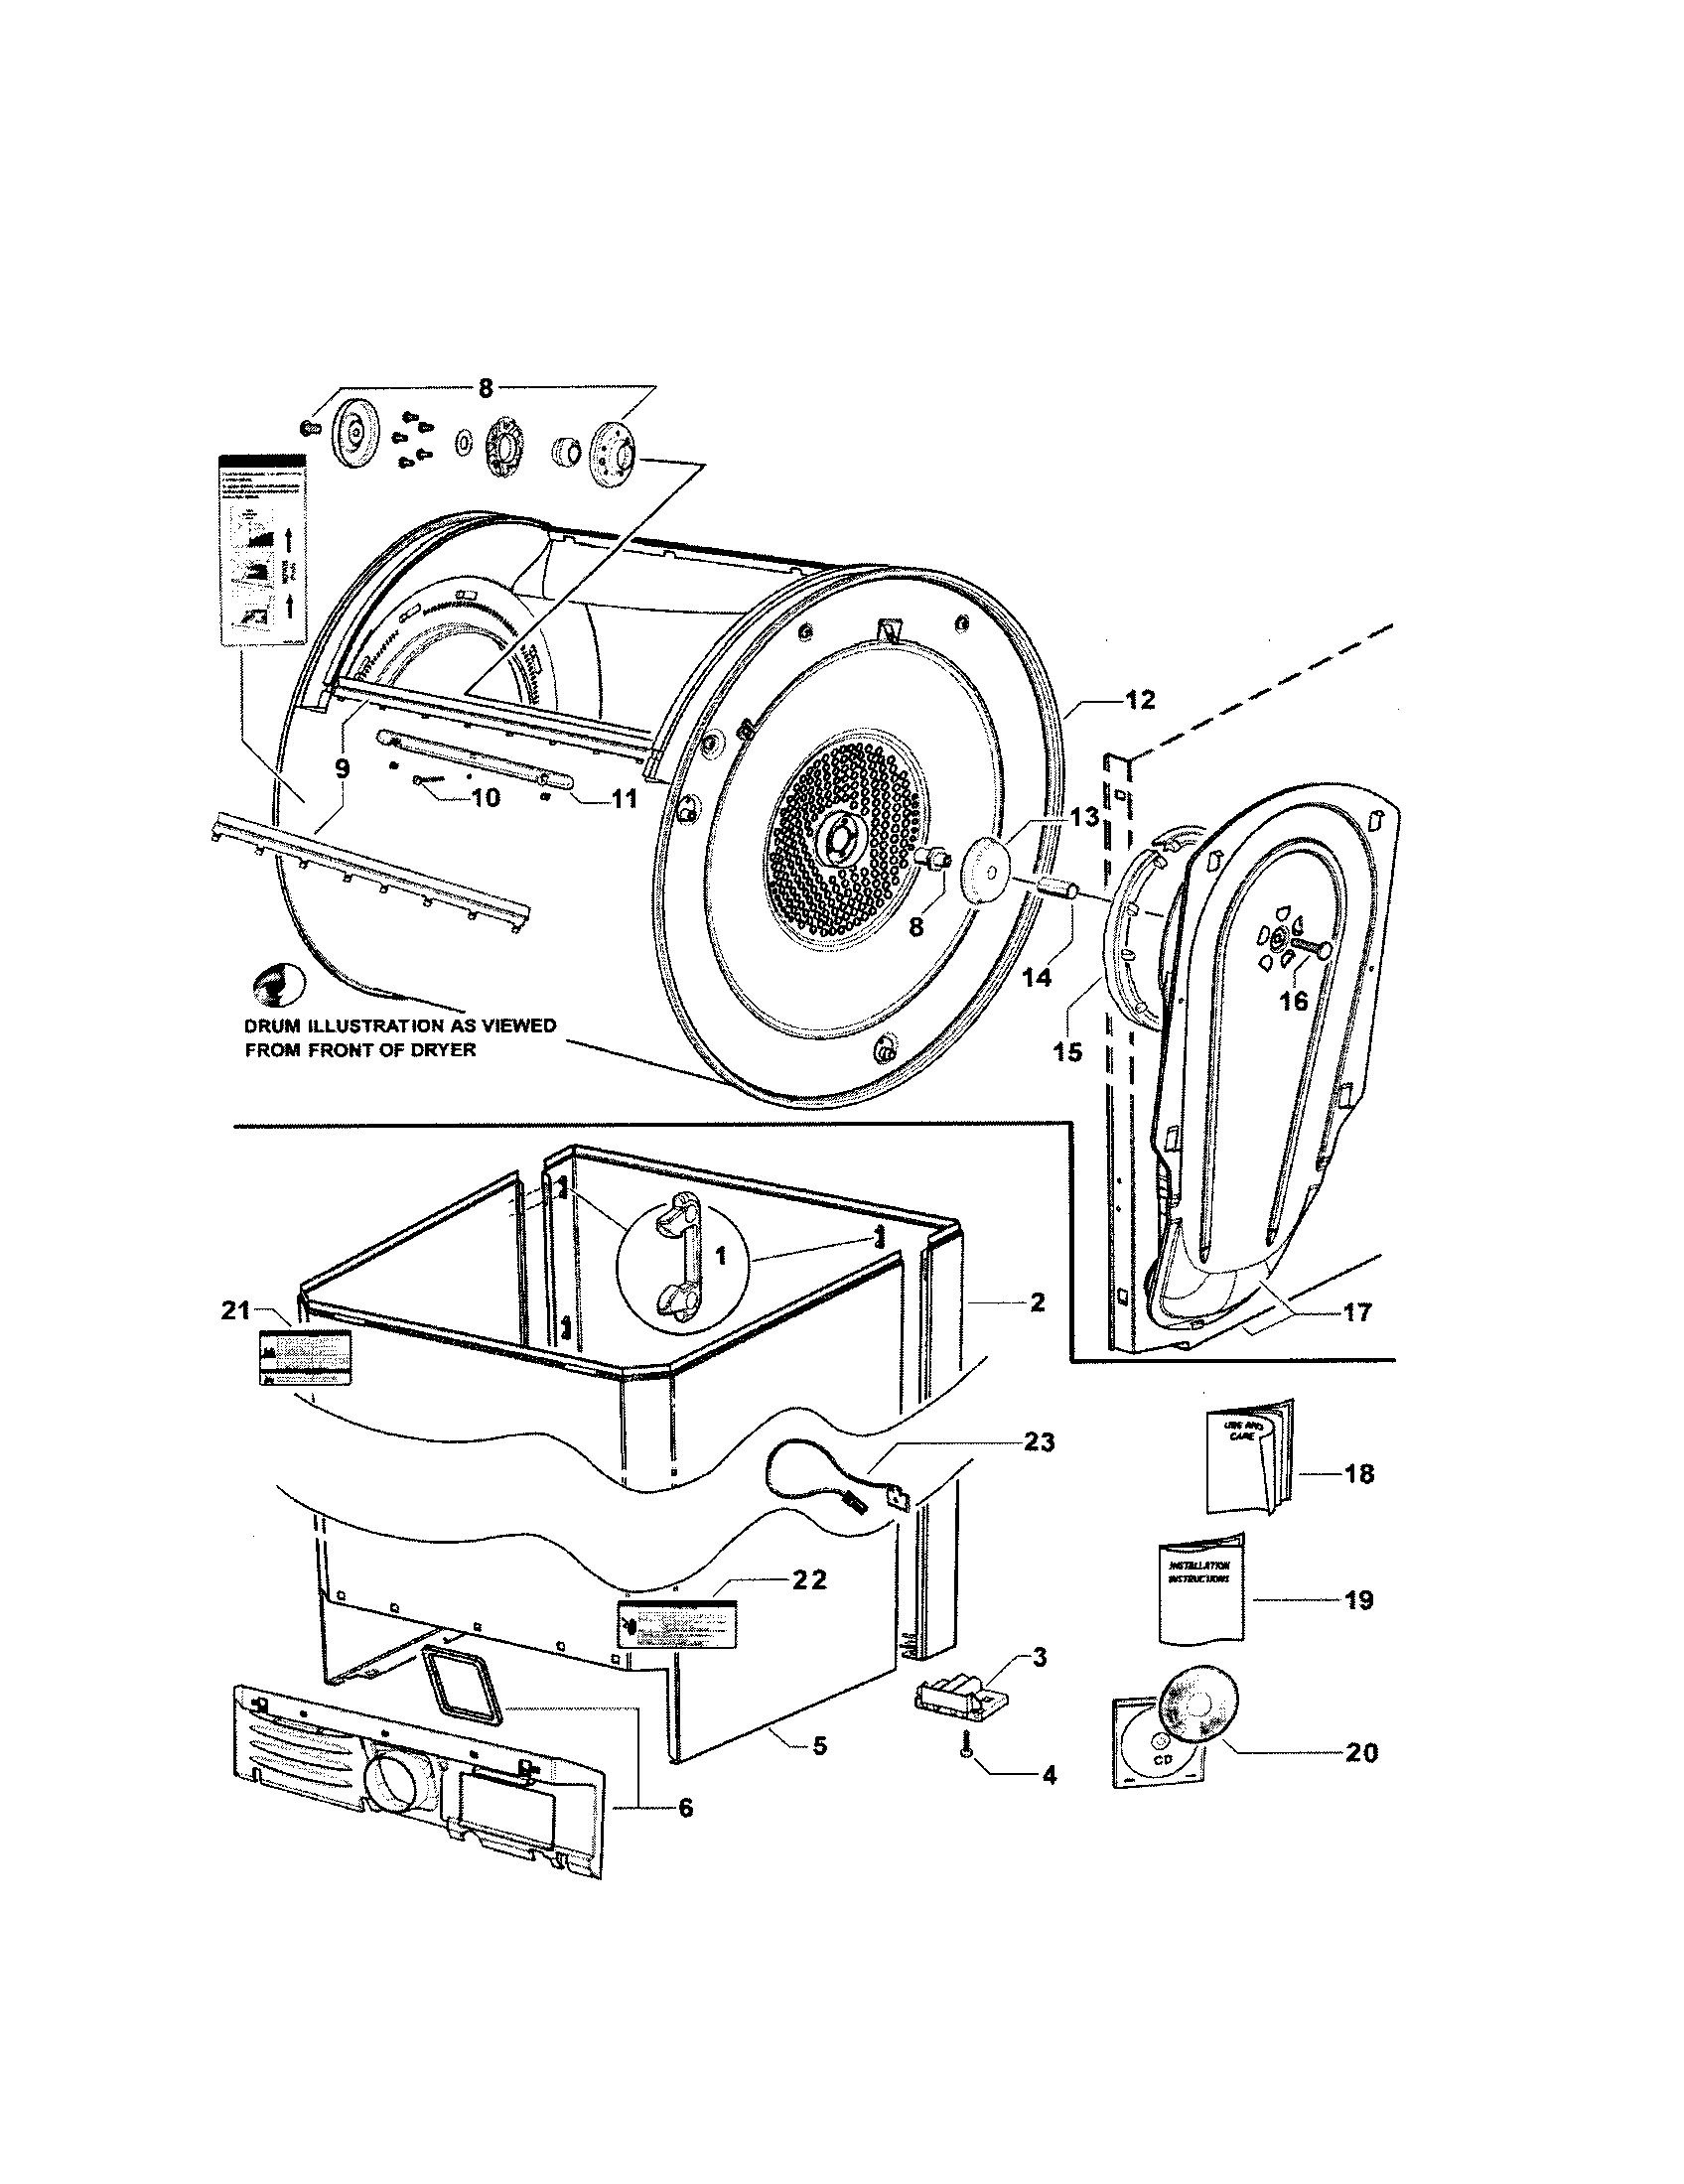 CABINET/DRUM/INLET DUCT Diagram & Parts List for Model